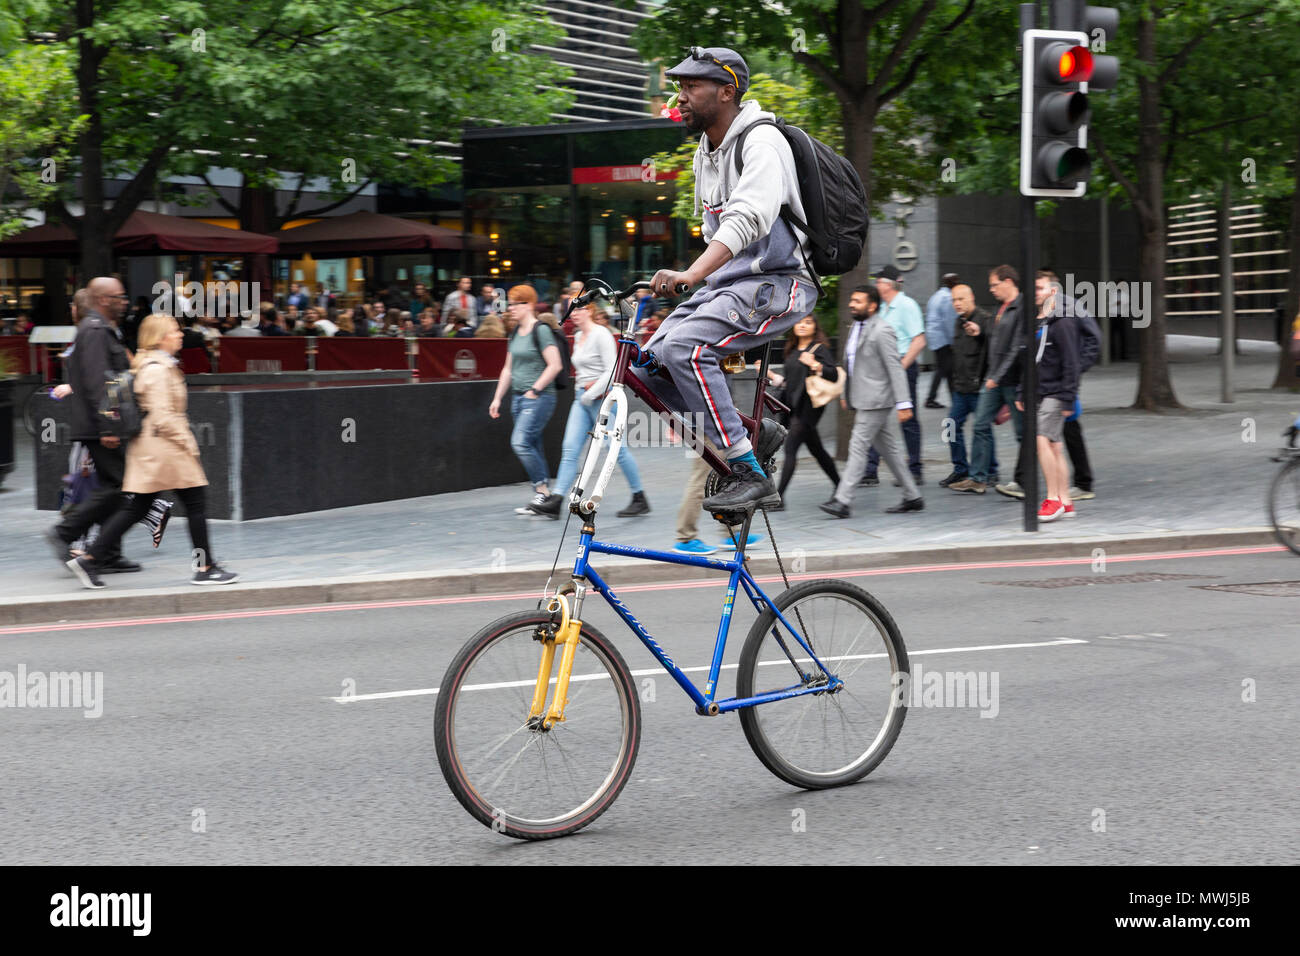 LONDON, UK - MAY 24, 2018 : A man riding a 'double-decker' custom made bicycle in the London Bridge area. - Stock Image